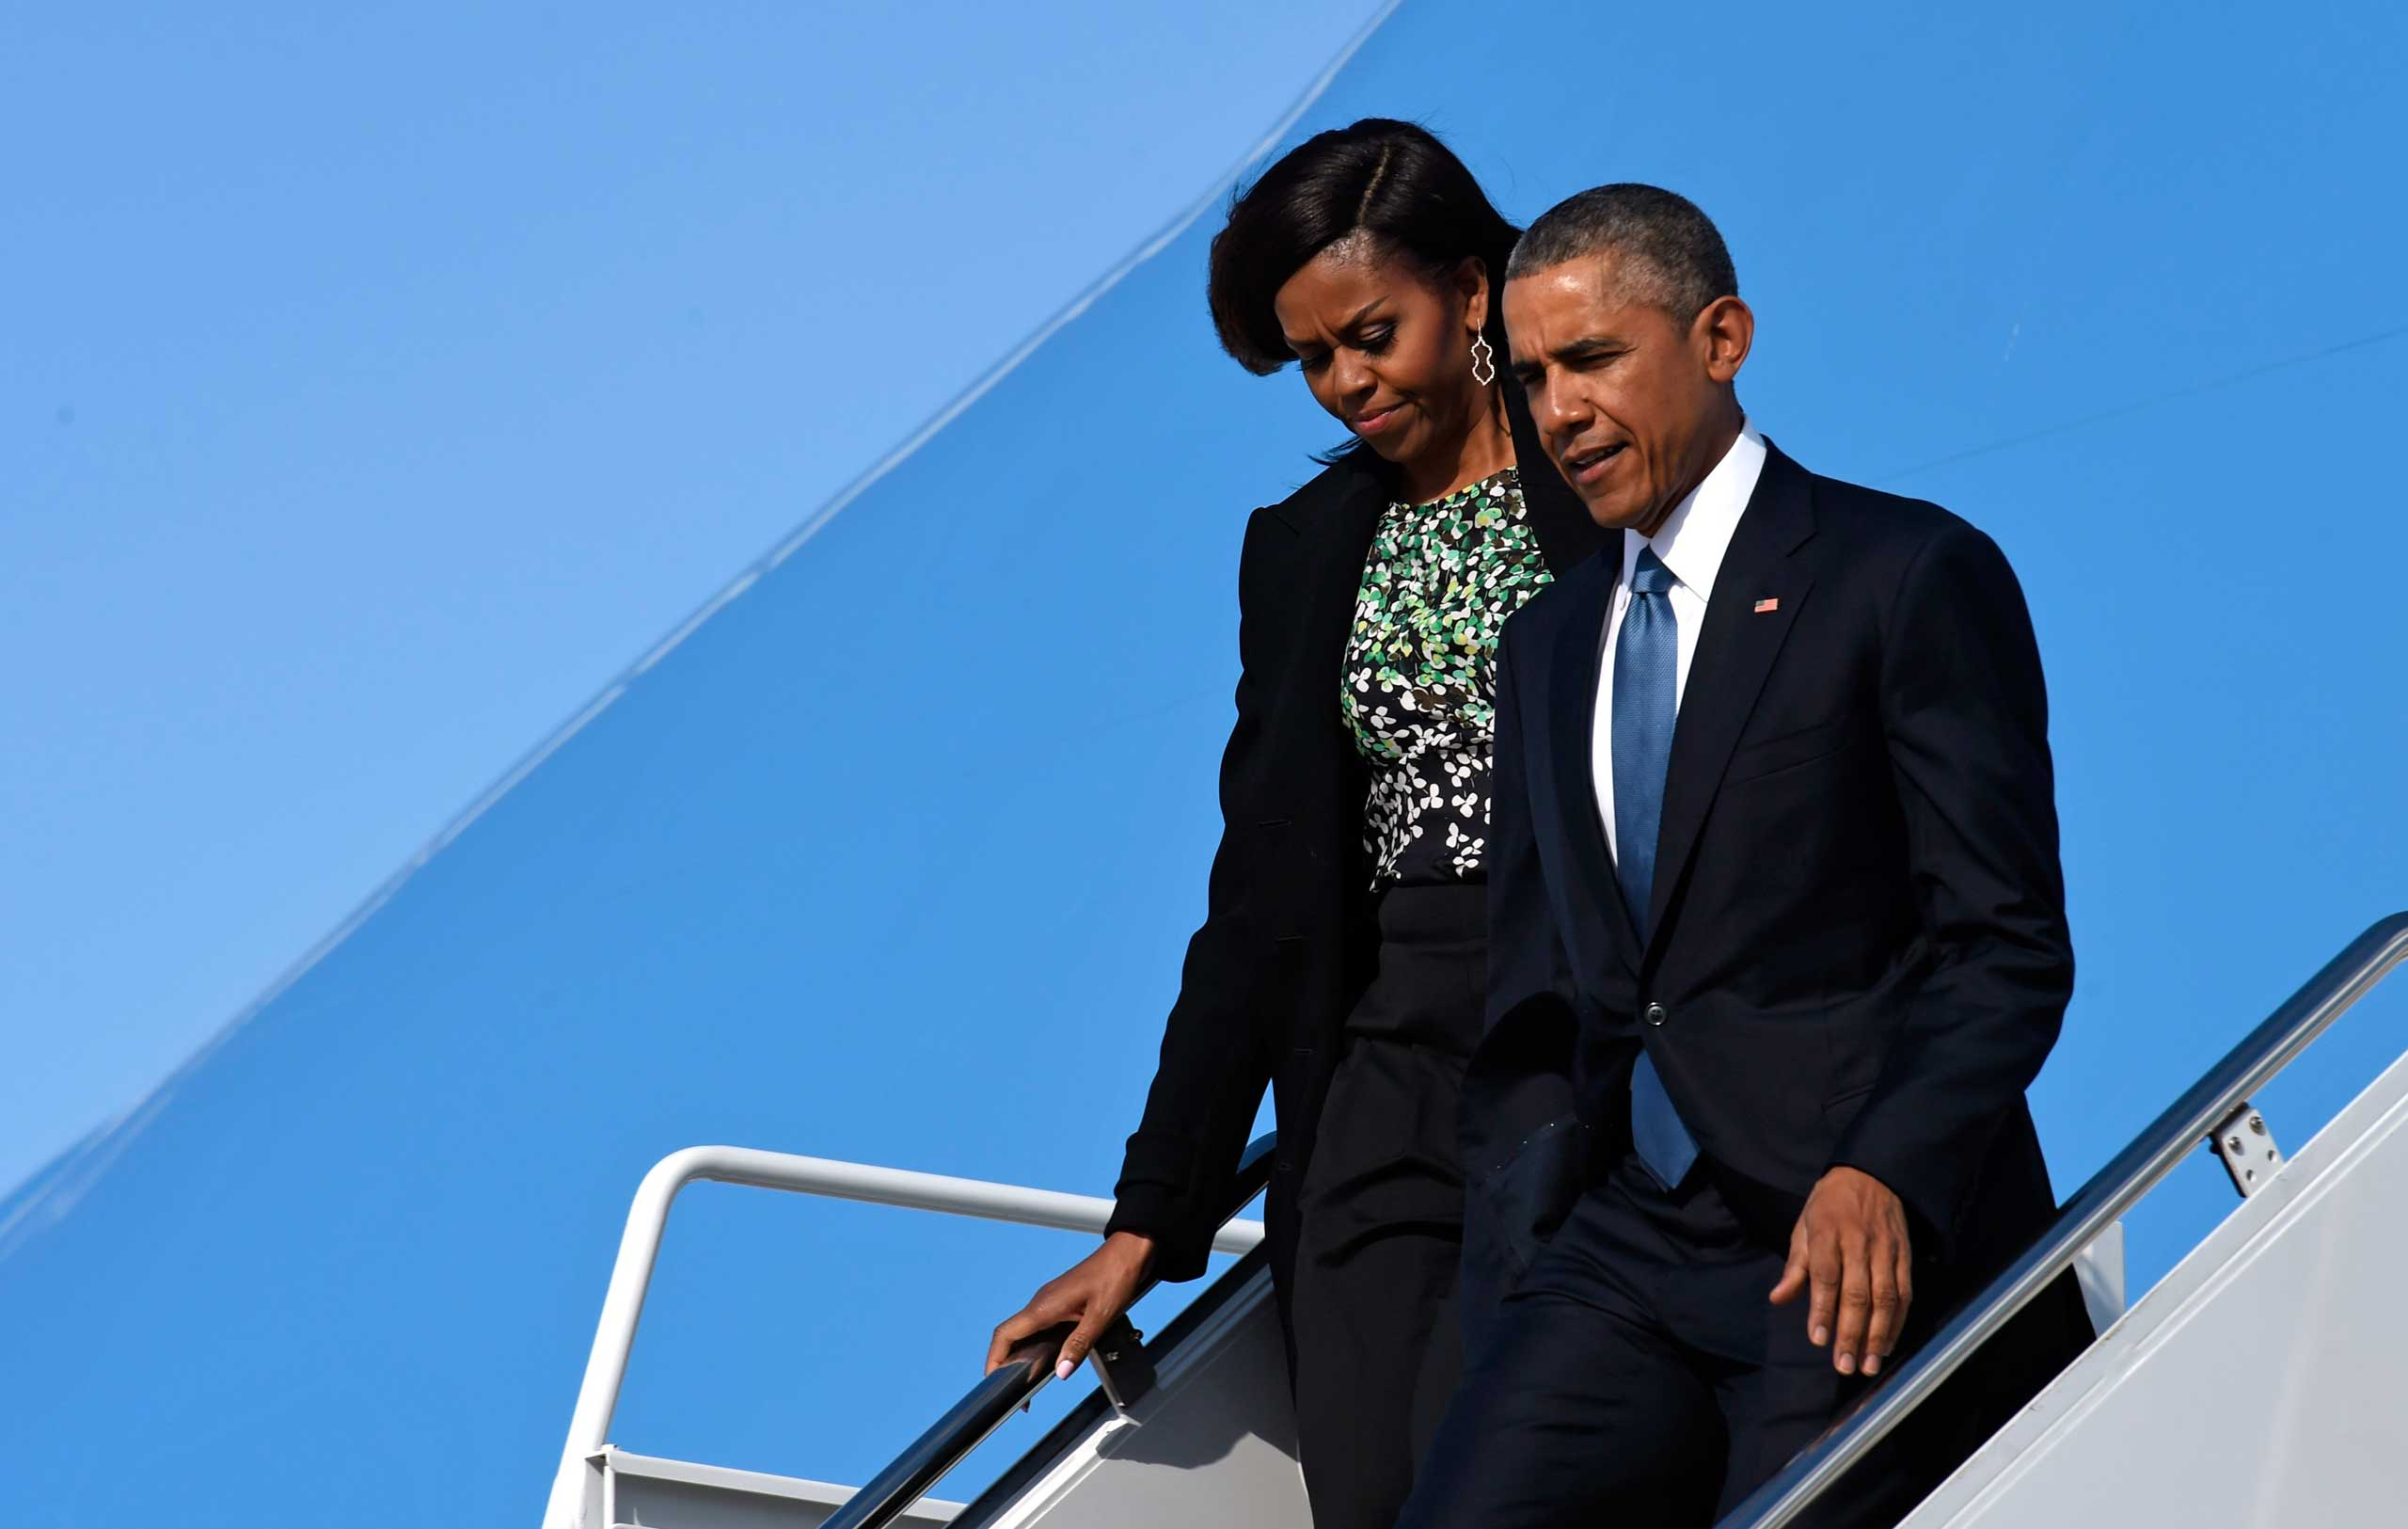 U.S. President Barack Obama and First Lady Michelle Obama walk down the steps of Air Force One at Andrews Air Force Base in Maryland on March 30, 2015